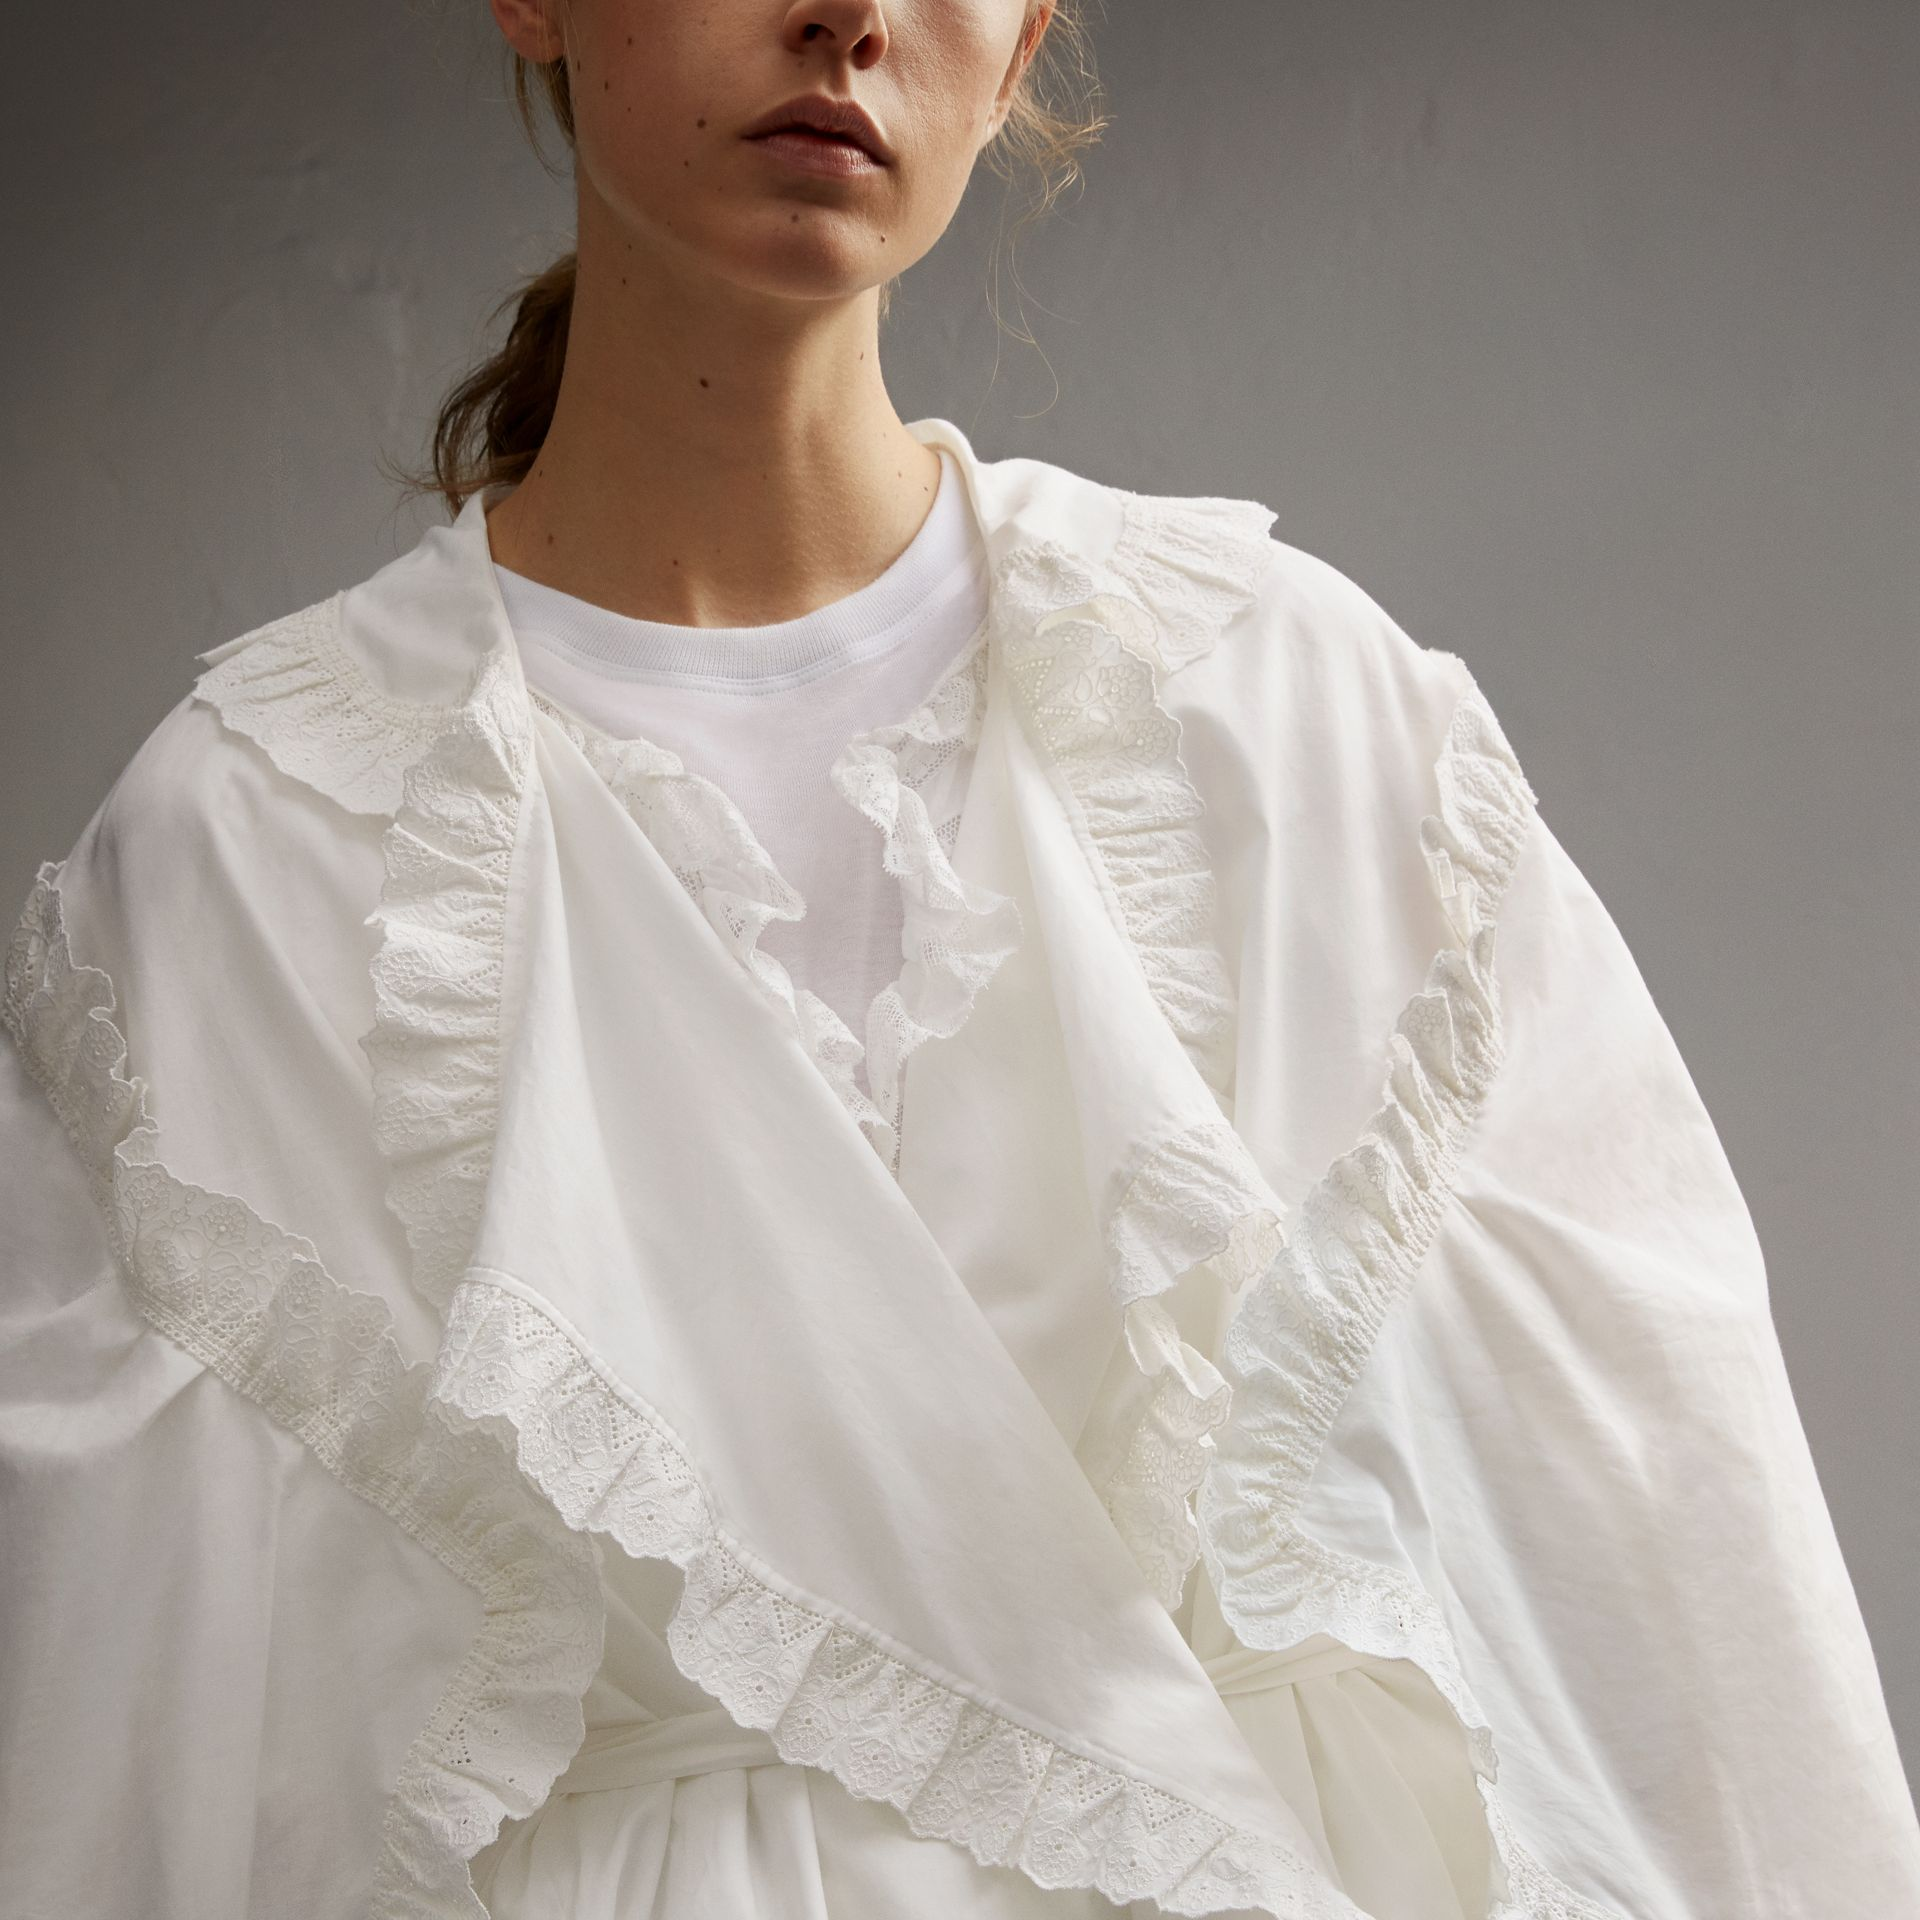 Broderie Anglaise Ruffle Cotton Dress in White - Women | Burberry - gallery image 5